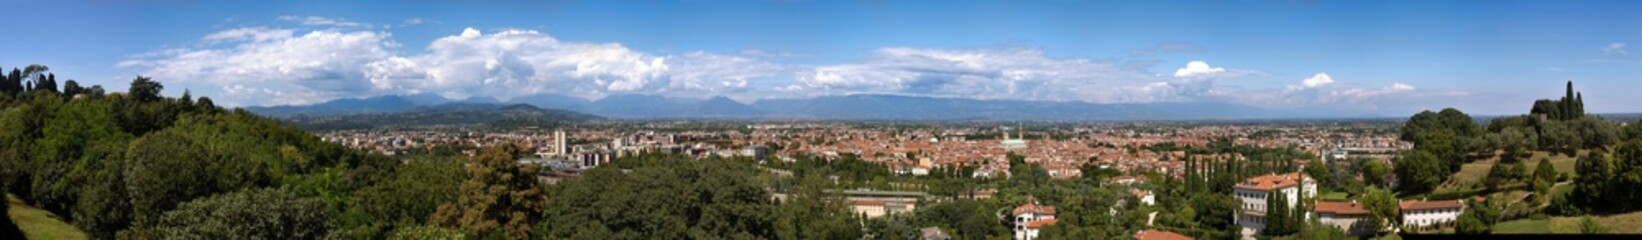 50 Megapixels skyline of vicenza with the mountains on the background during a sunnyday